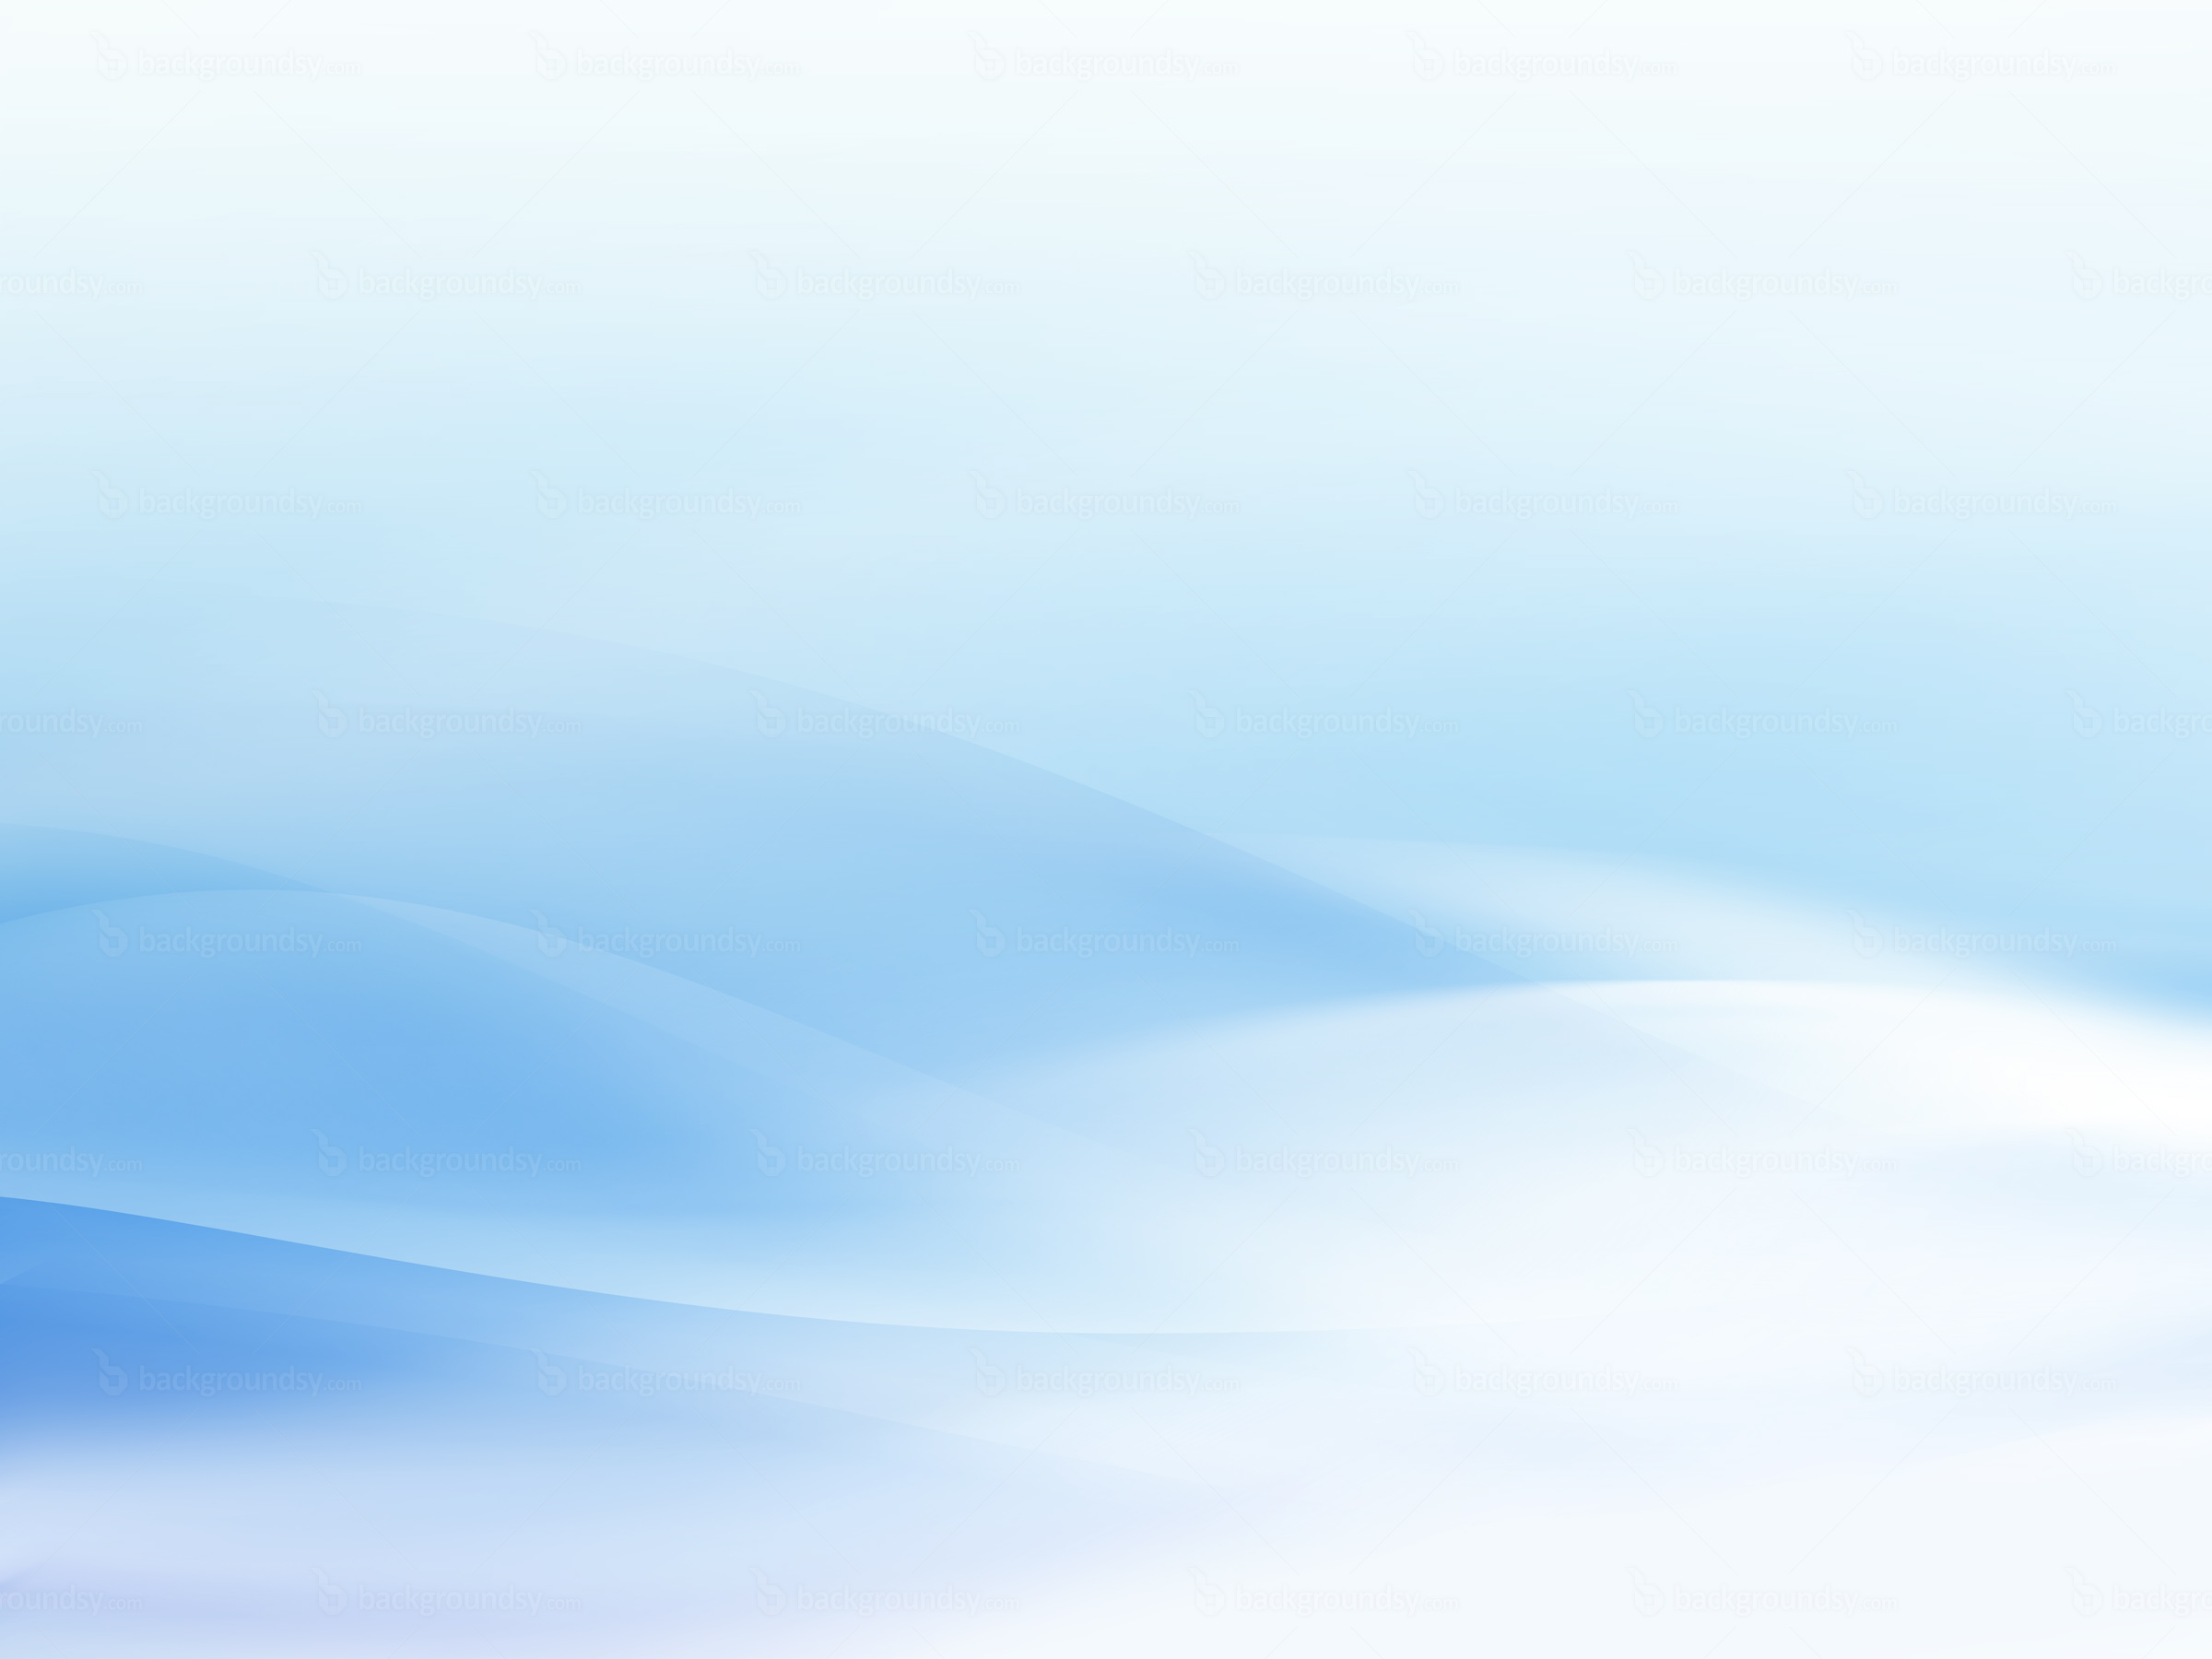 Light blue background Backgroundsycom 2400x1800